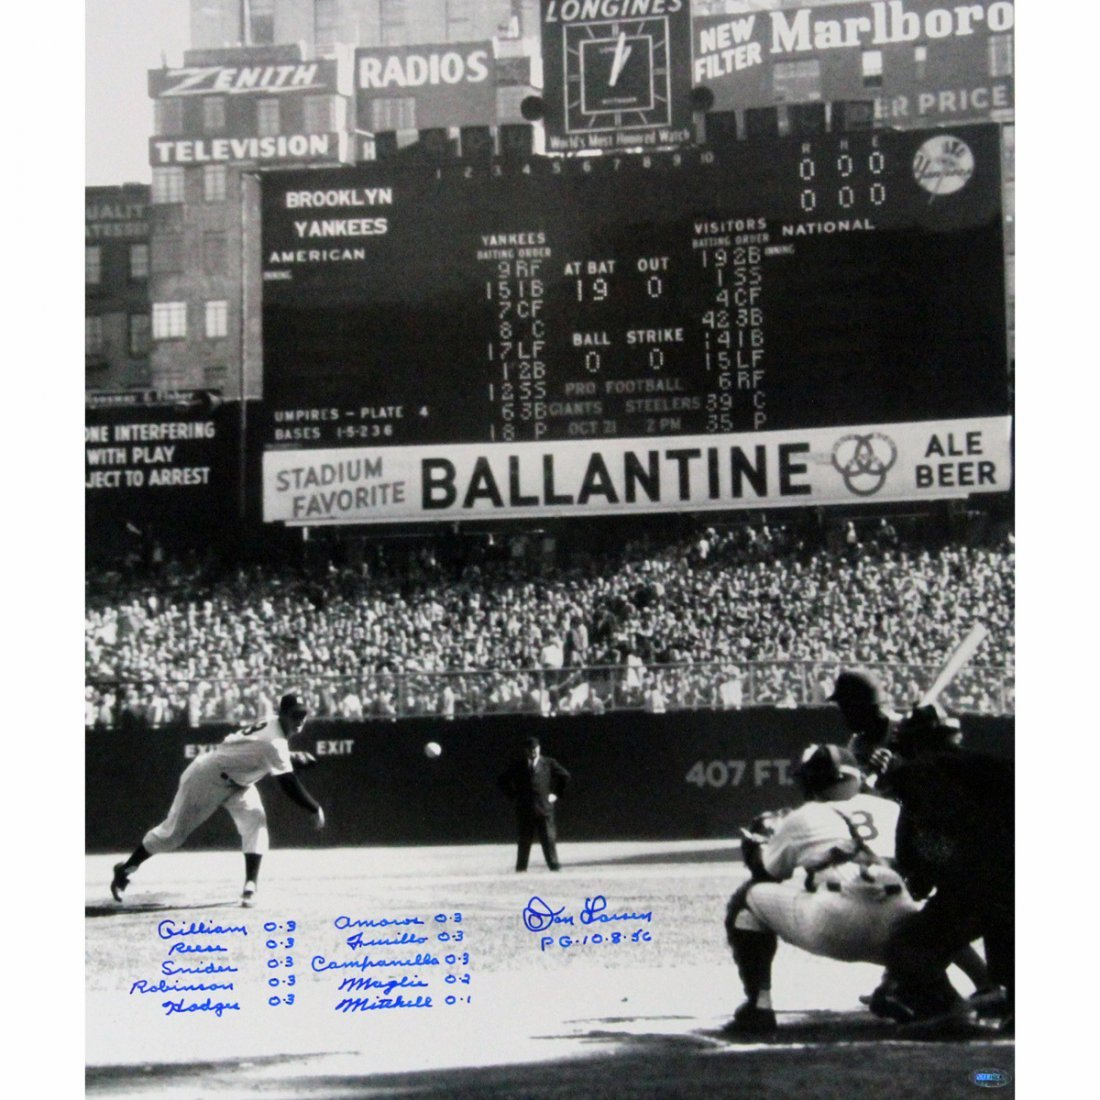 Don Larsen Signed PG First Pitch Vertical 20x24 w/ Perf